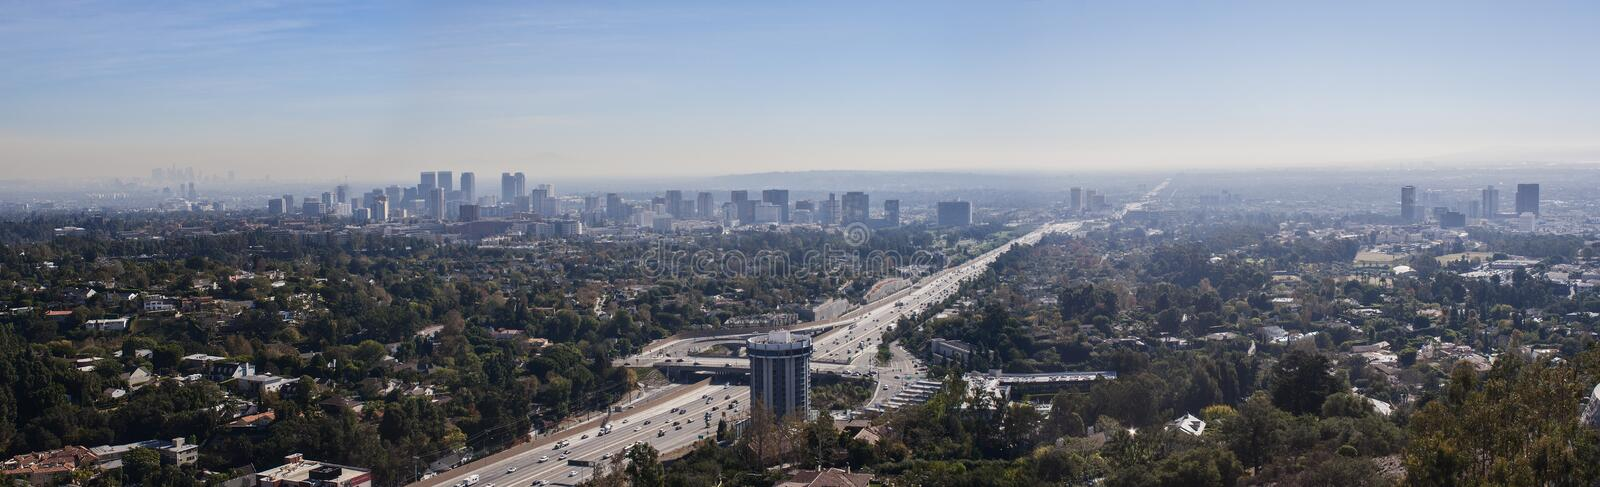 Aerial view of downtown Los Angeles. USA stock image